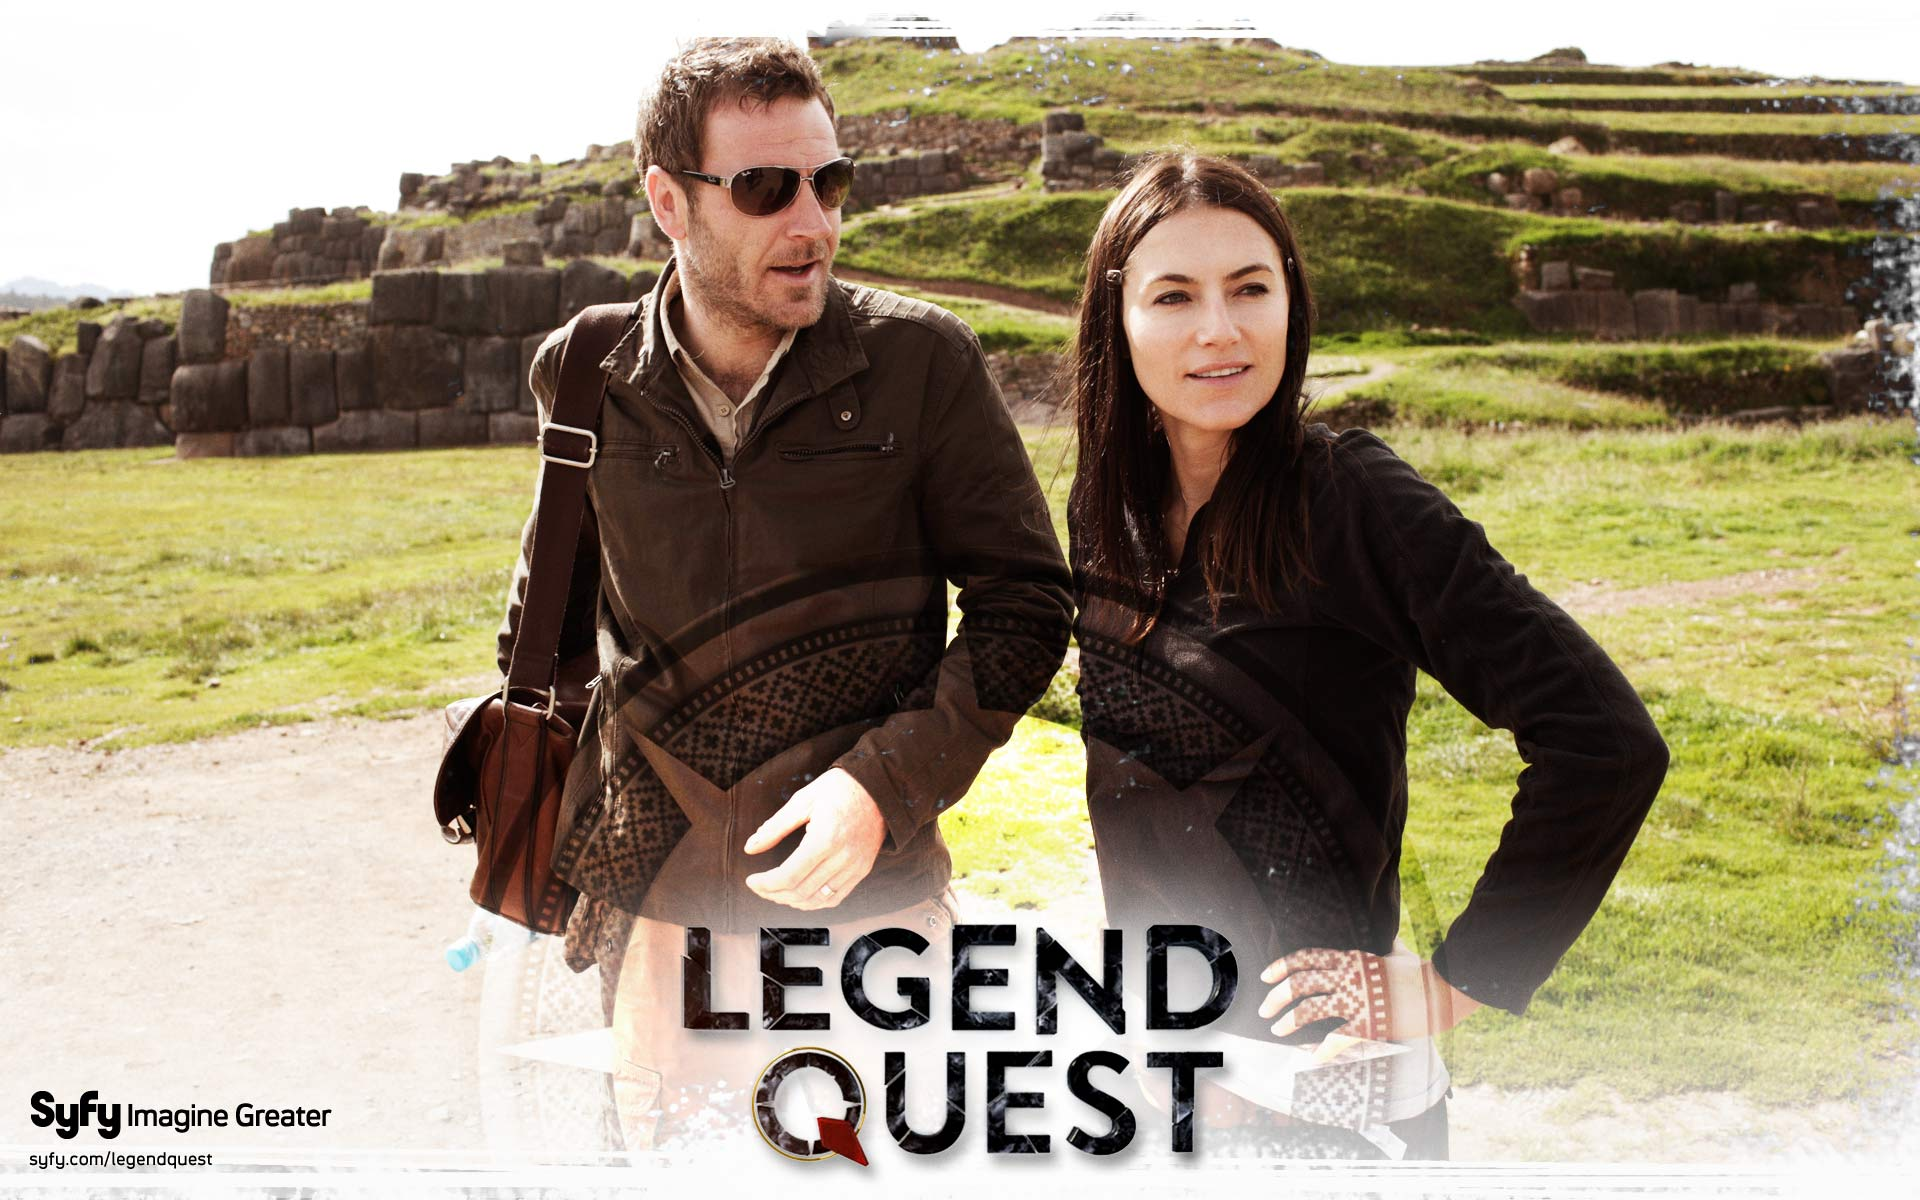 Legend Quest - This action-adventure series follows Ashley Cowie searching ancient sites around the globe tracking history's most sacred lost artifacts.